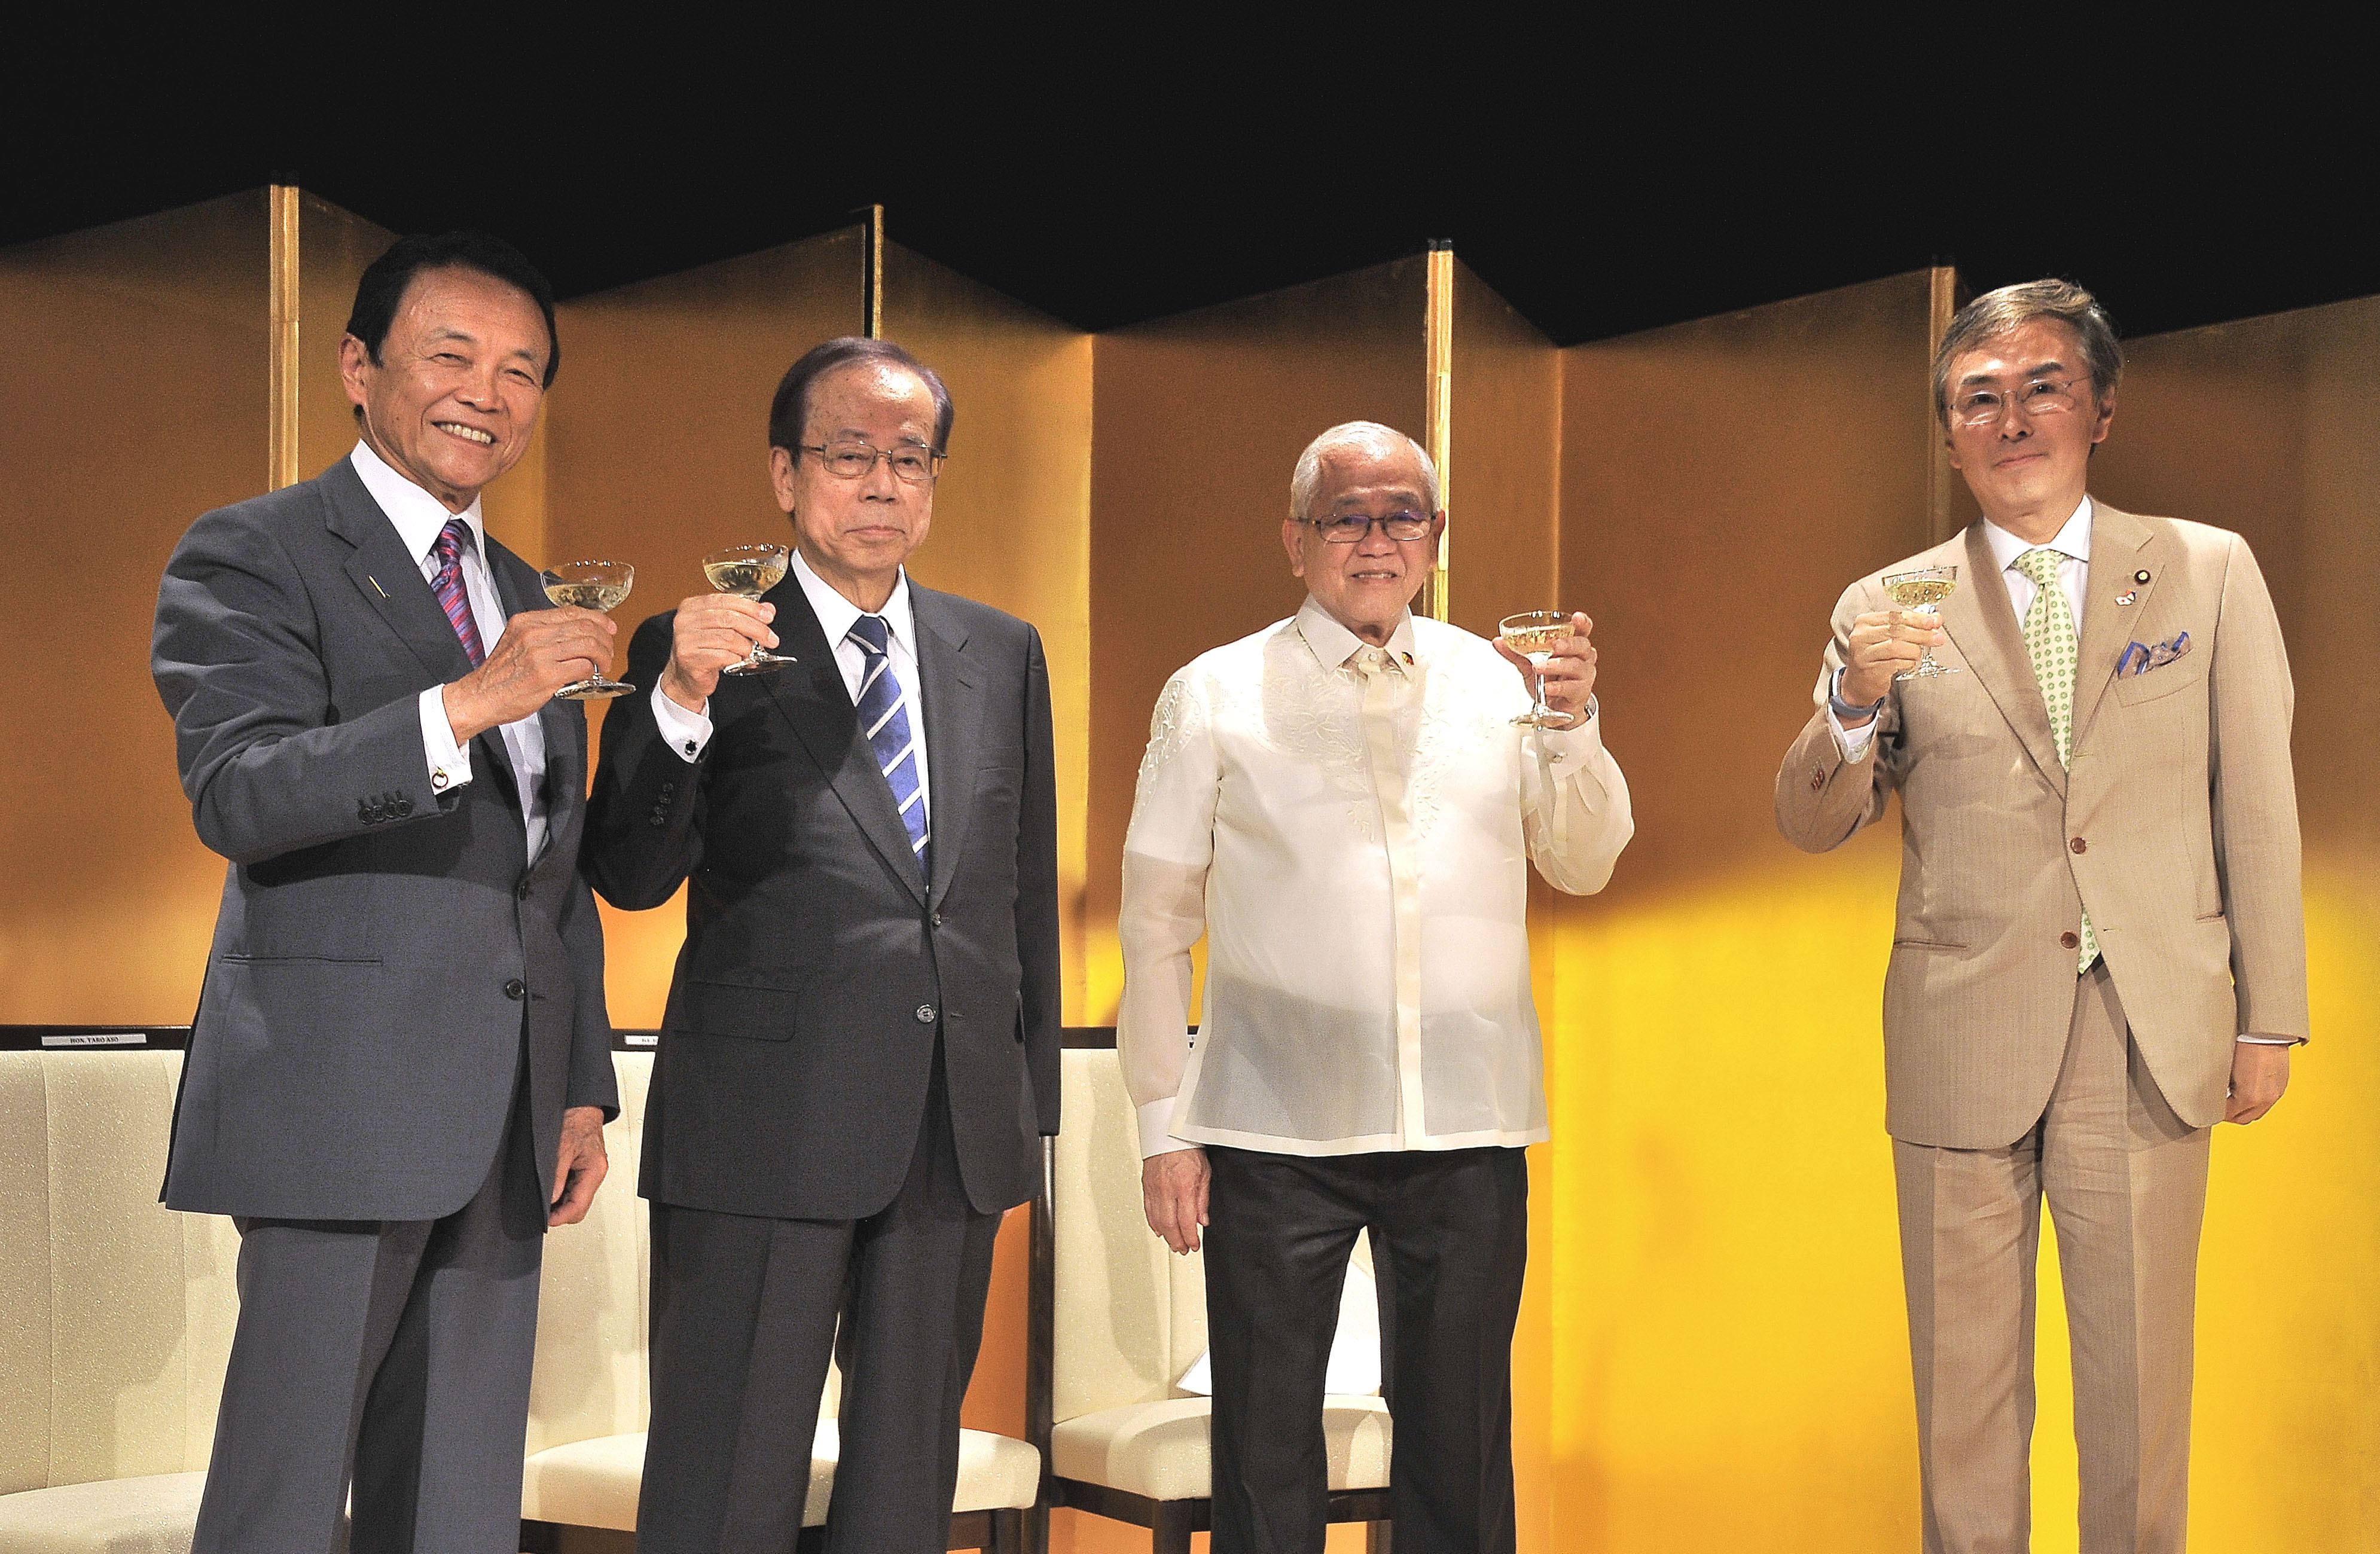 Philippines Ambassador Jose C. Laurel V (second from right), poses for a photo with (from left) Deputy Prime Minister and Finance Minister Taro Aso, Former Prime Minister Yasuo Fukuda and Nobuteru Ishihara, minister in charge of economic revitalization and chairman of the Japan-Philippines Parliamentary Friendship League, during a reception to celebrate of the 119th anniversary the Philippine's independence at Imperial Hotel, Tokyo on June 12. | YOSHIAKI MIURA